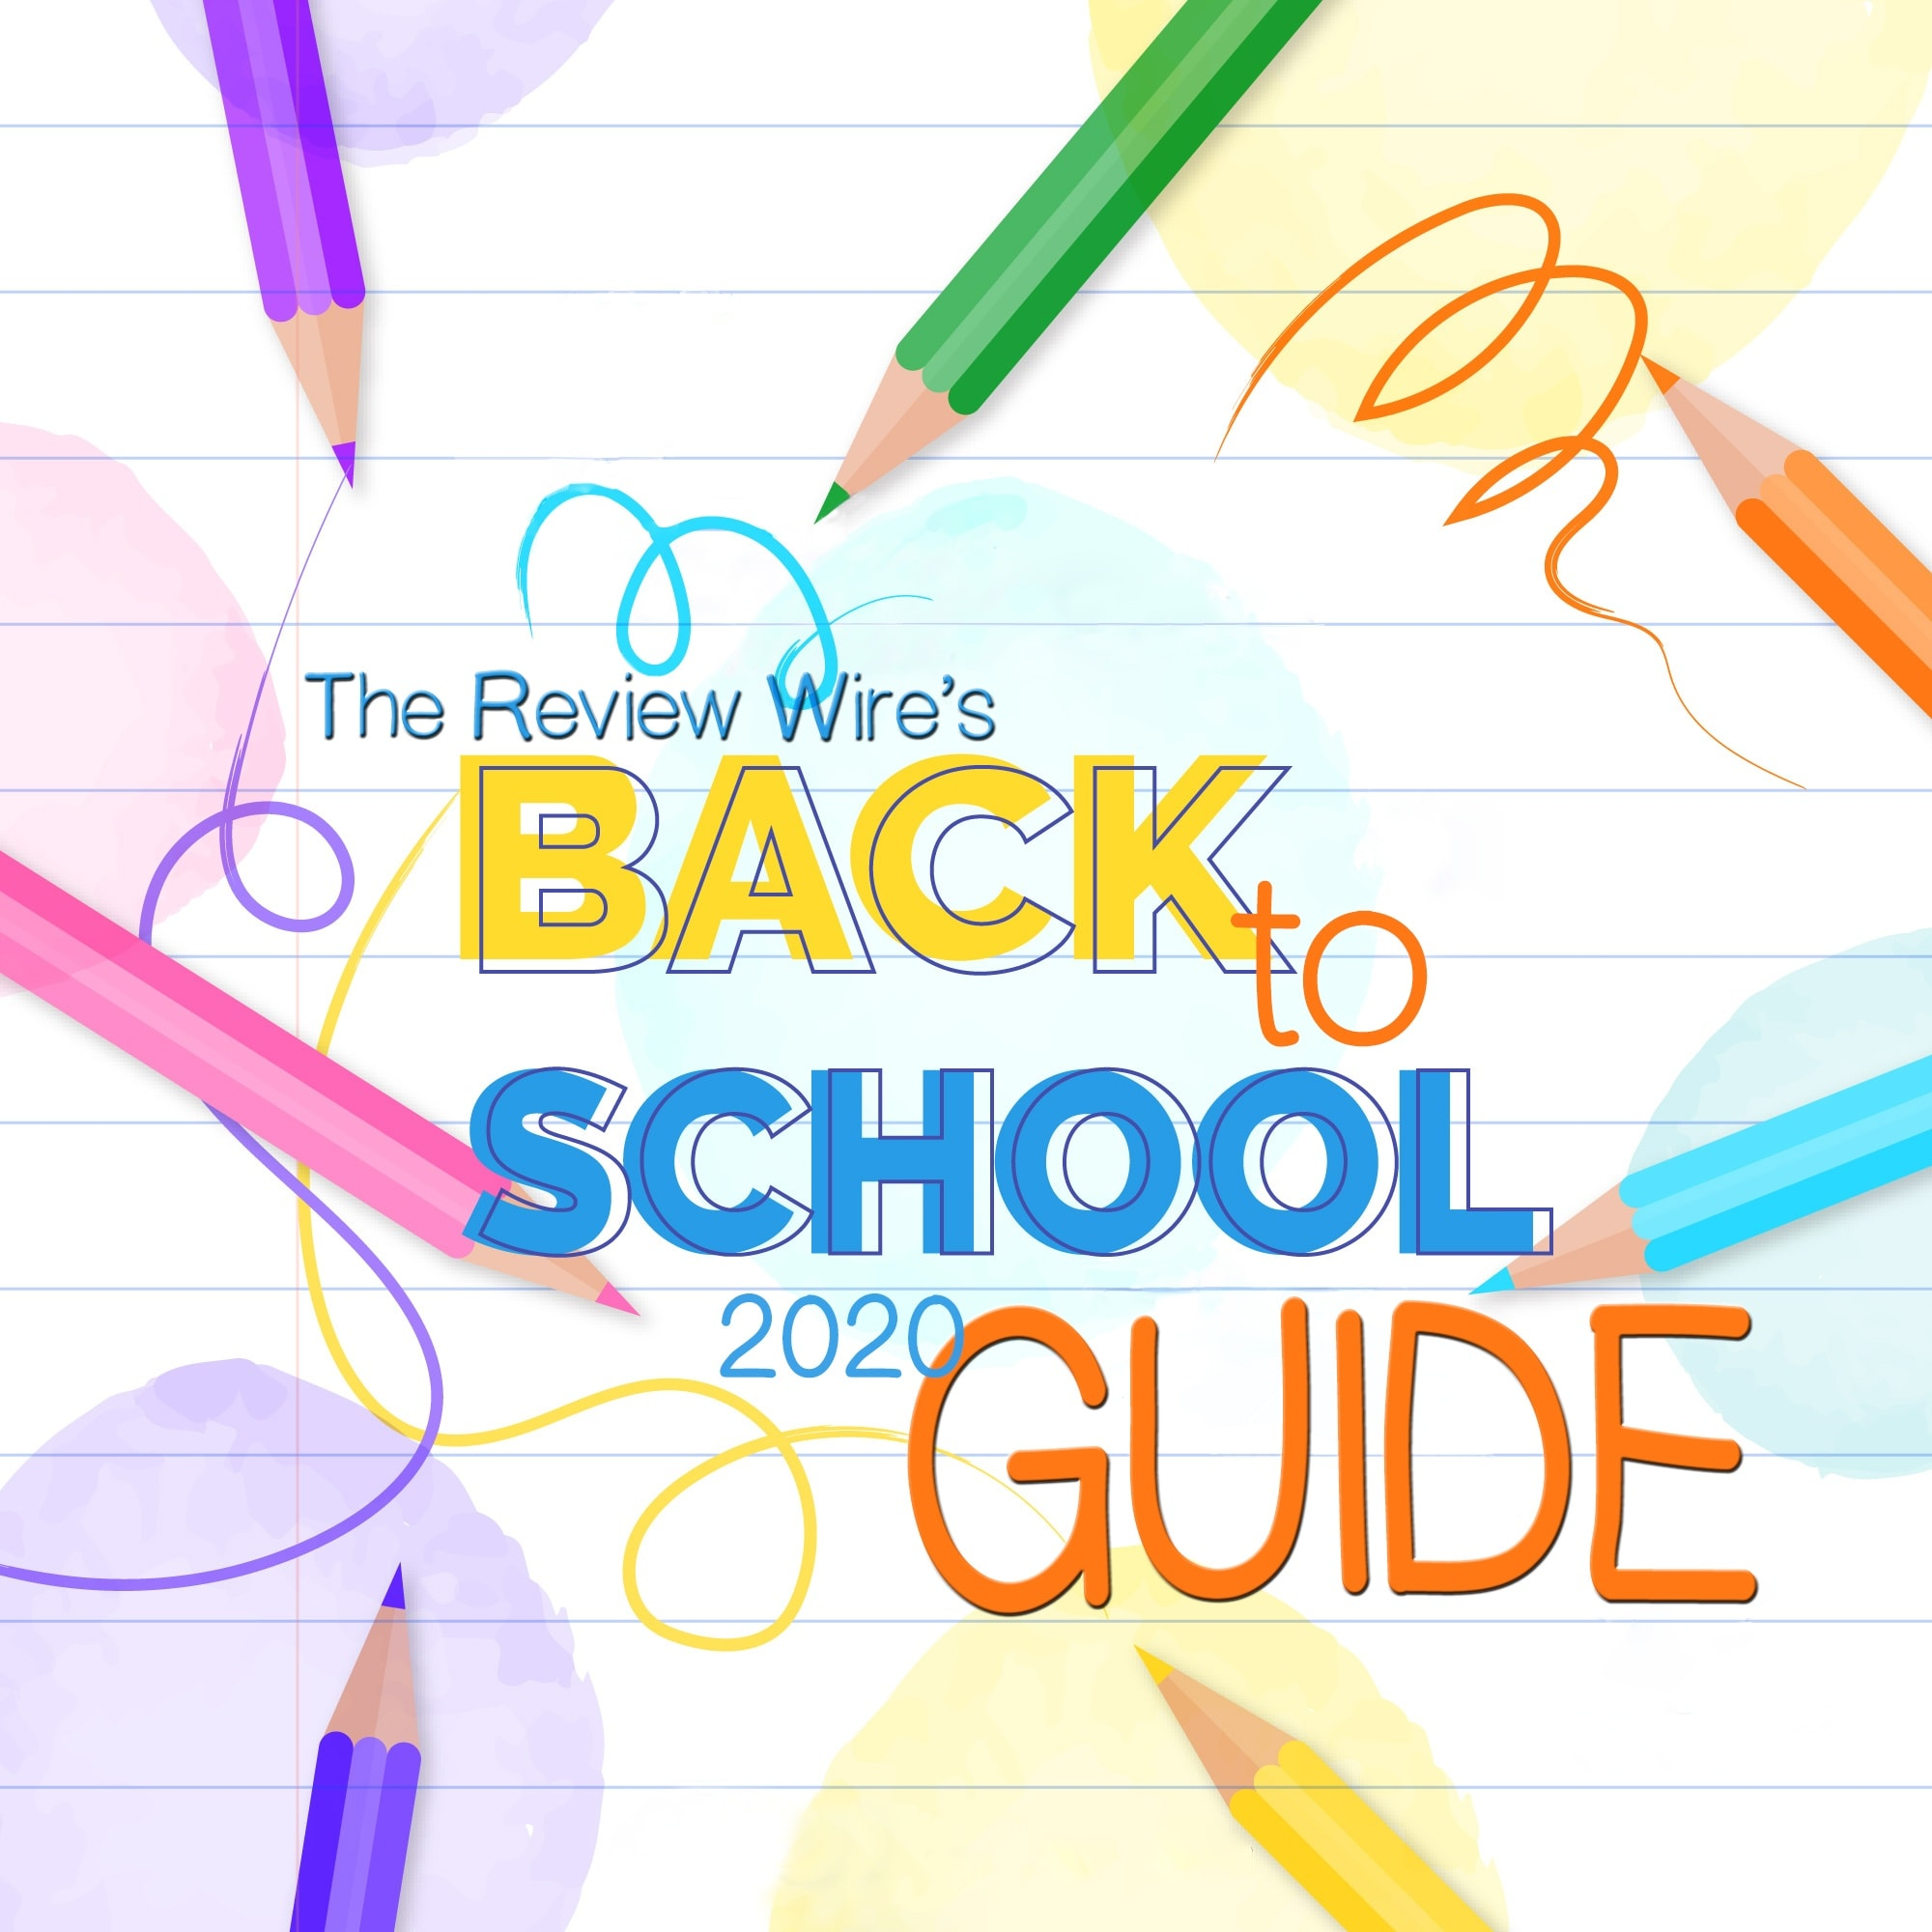 The Review Wire: Back to School Guide 2020